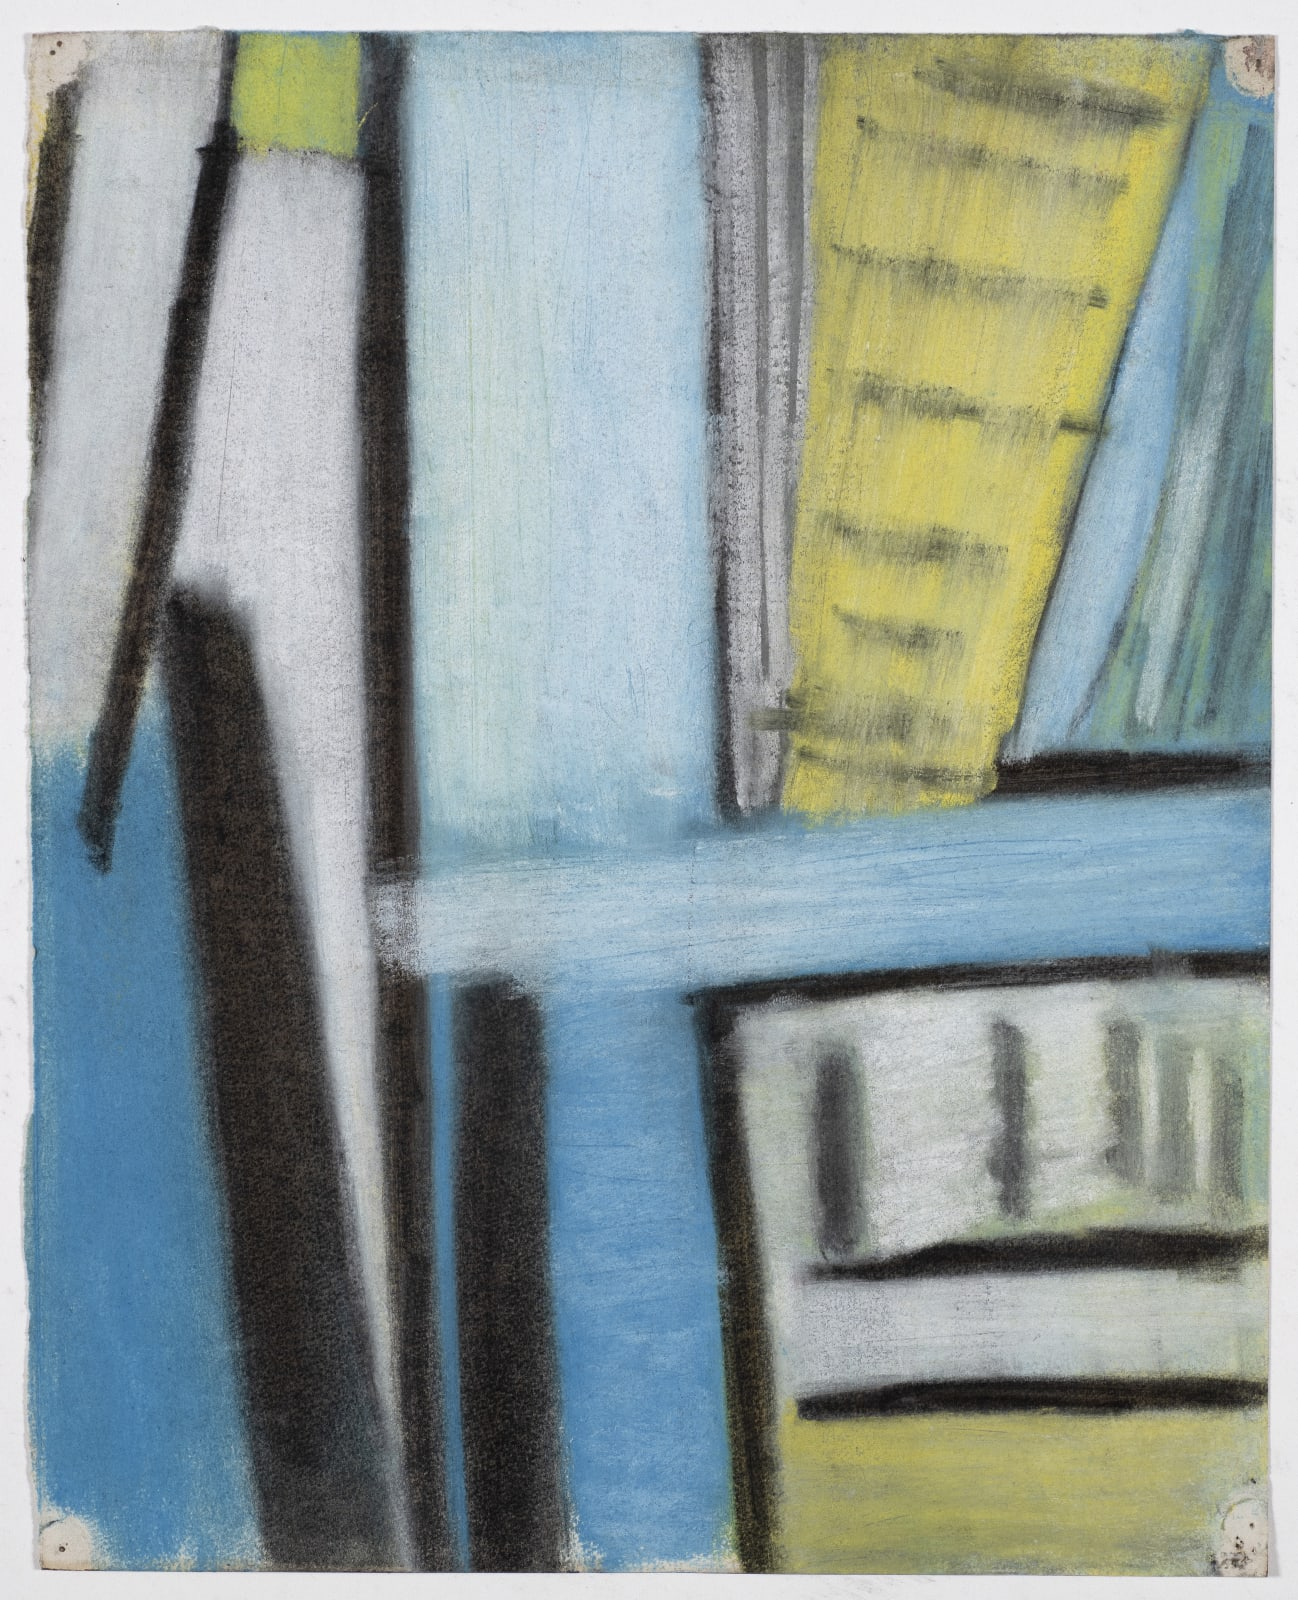 Drawing, c. 1953 Coloured chalk on paper 35 x 28cm The Gustav Metzger Foundation